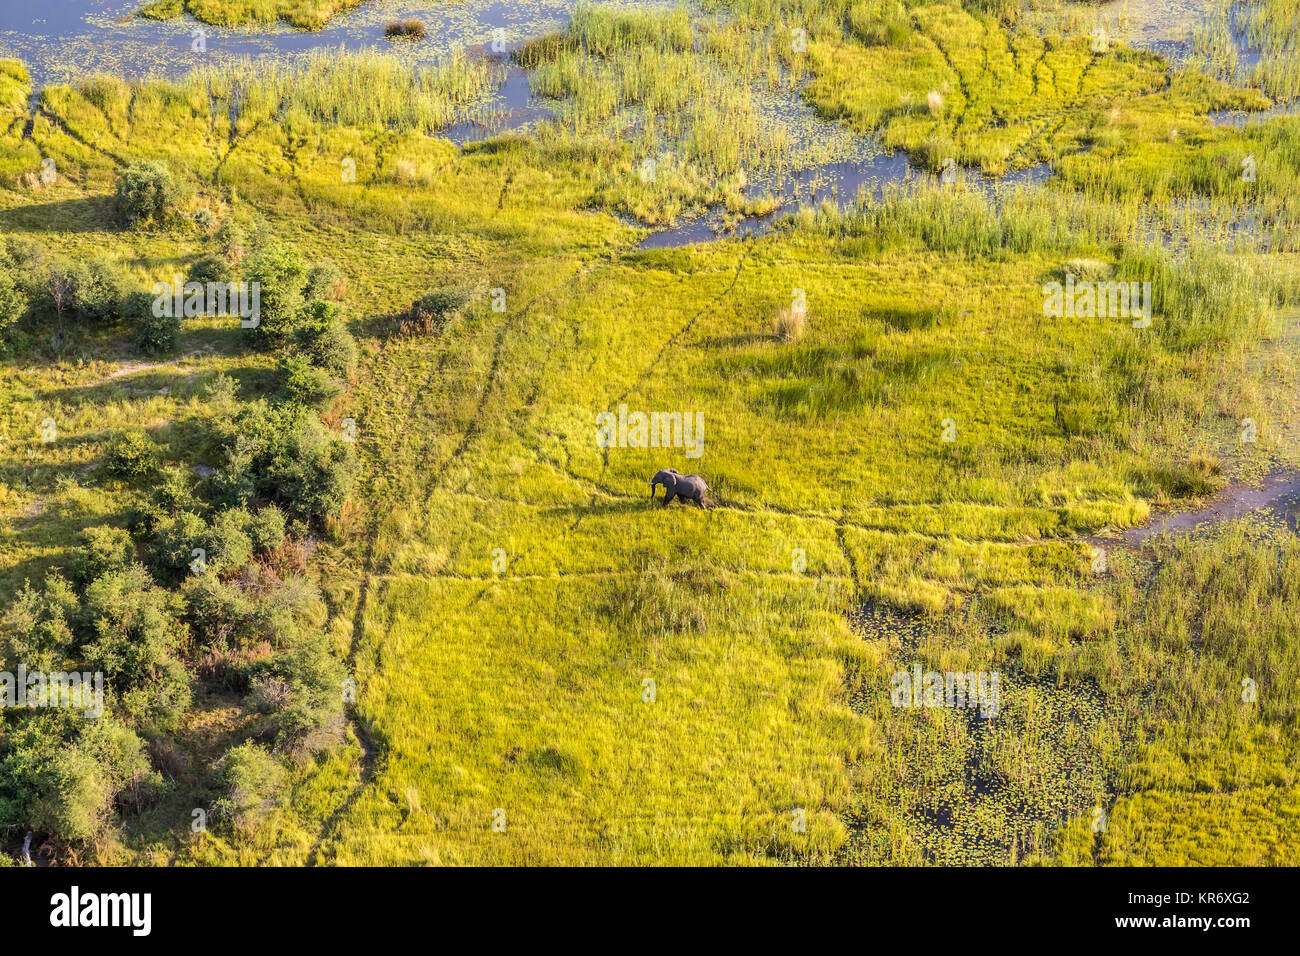 Aerial view of African Elephant walking across lush delta. - Stock Image